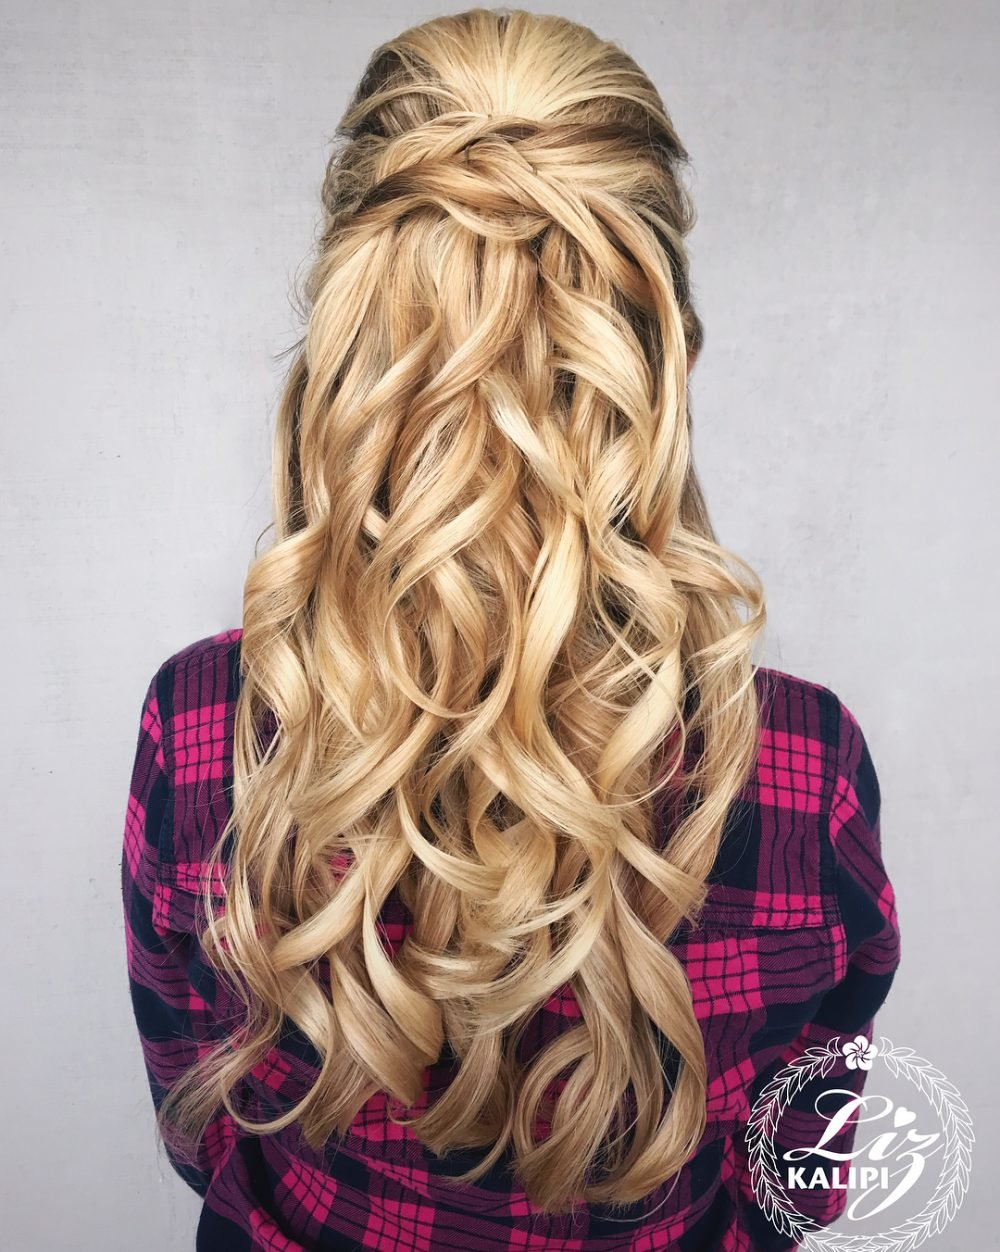 Free 29 Prom Hairstyles For Long Hair That Are Gorgeous Wallpaper